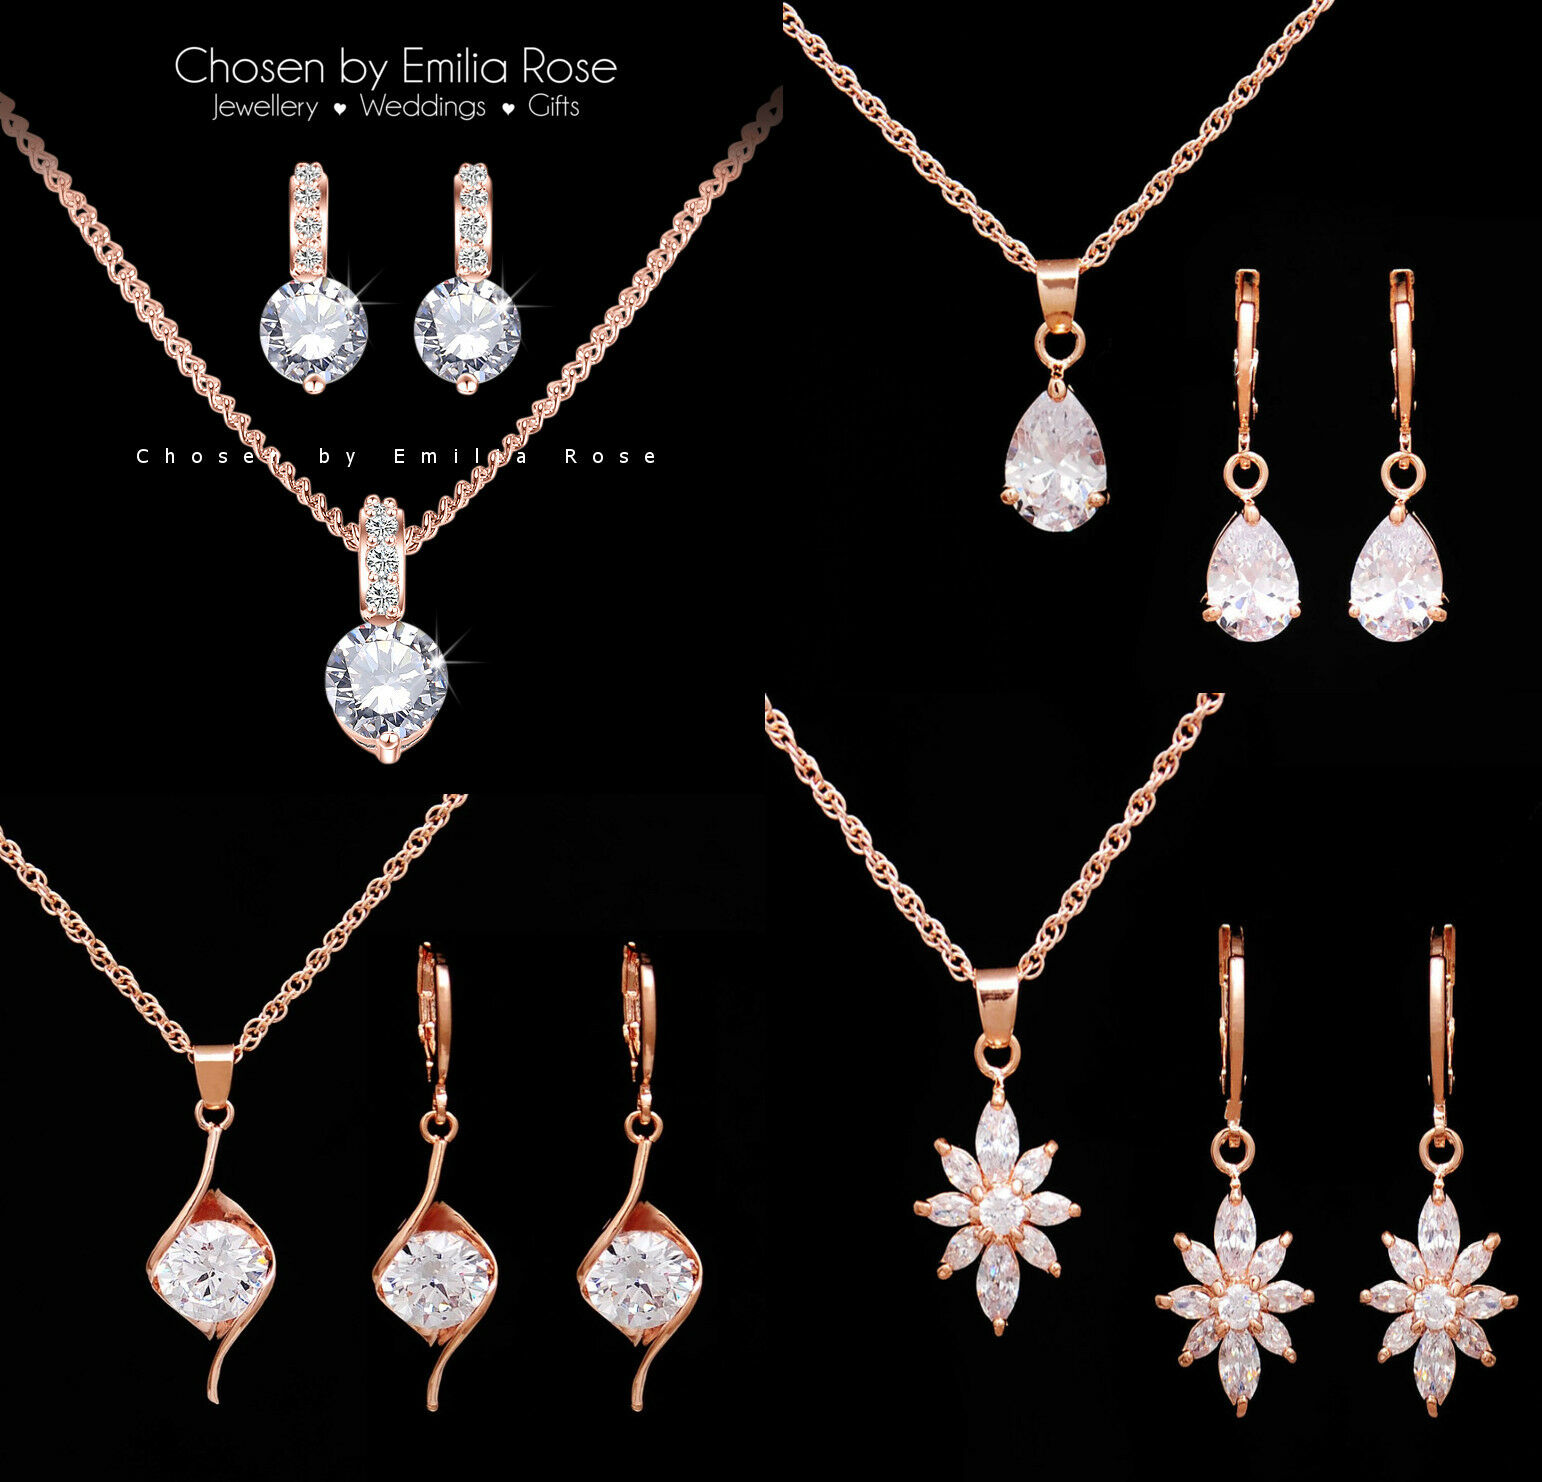 Jewellery - 18k Rose Gold Bridal Bridesmaid Necklace Earrings Jewellery Set Wedding Jewelry